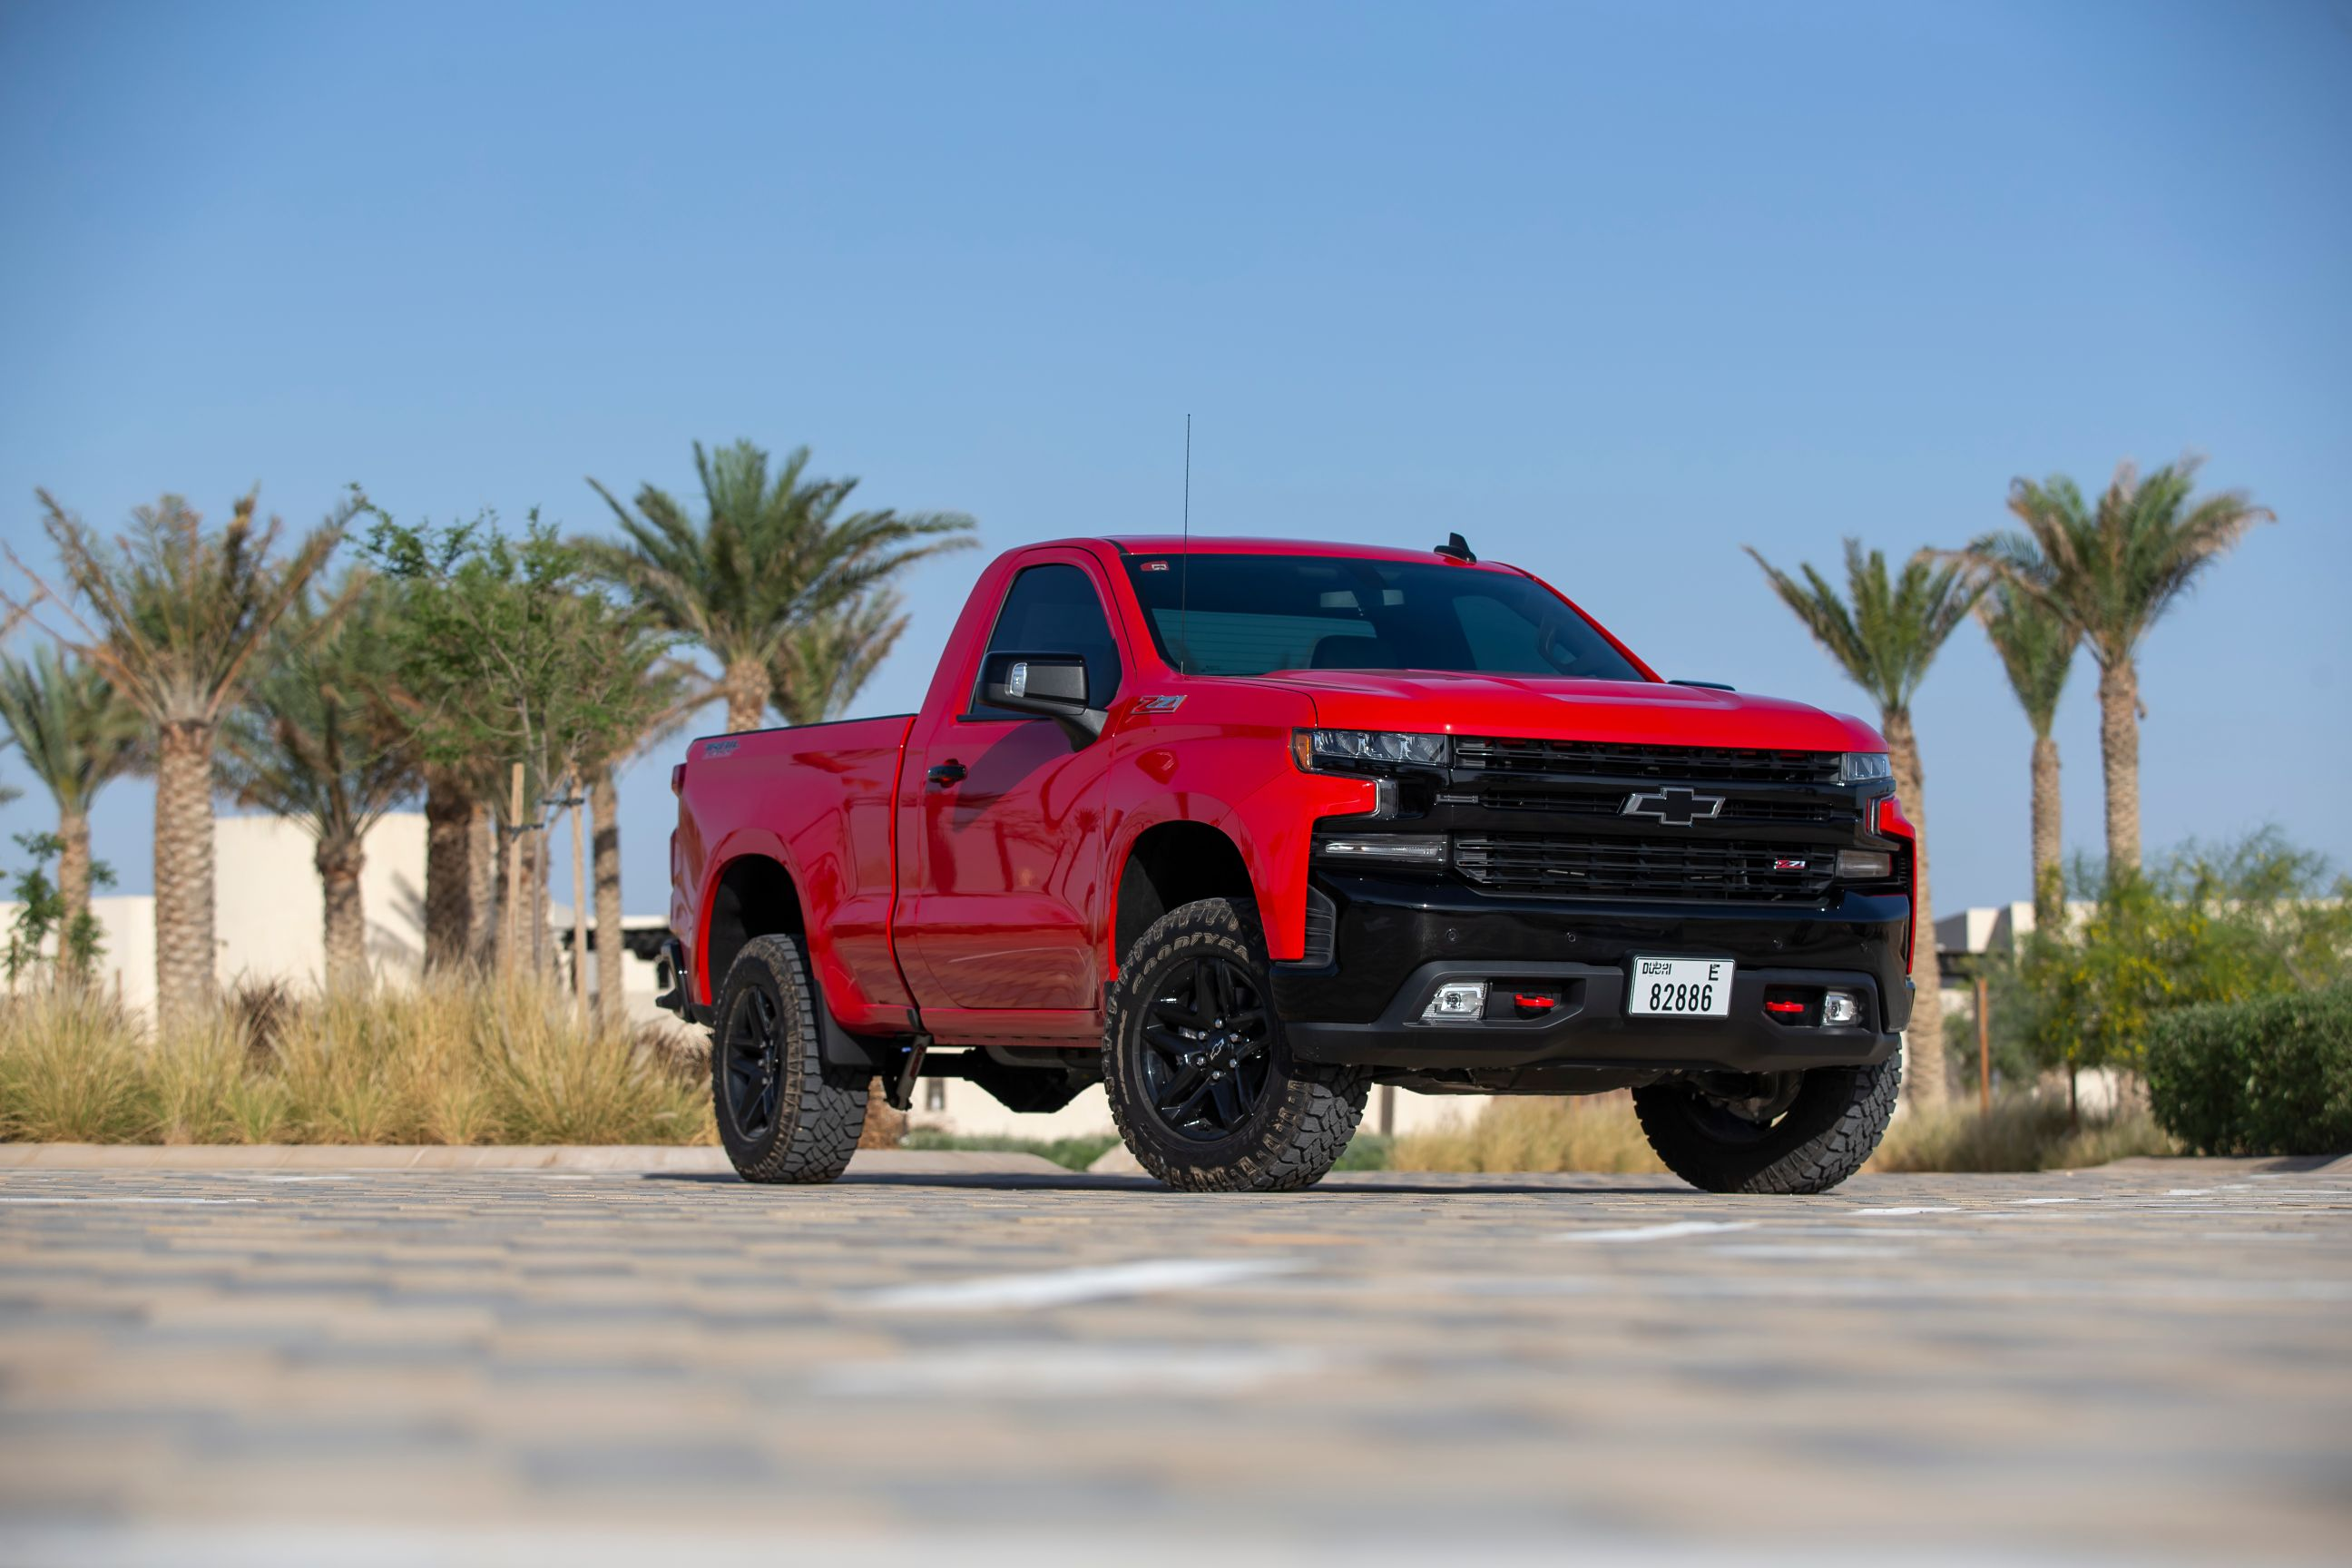 2019 Chevrolet Silverado launched in the UAE | Egypt ...